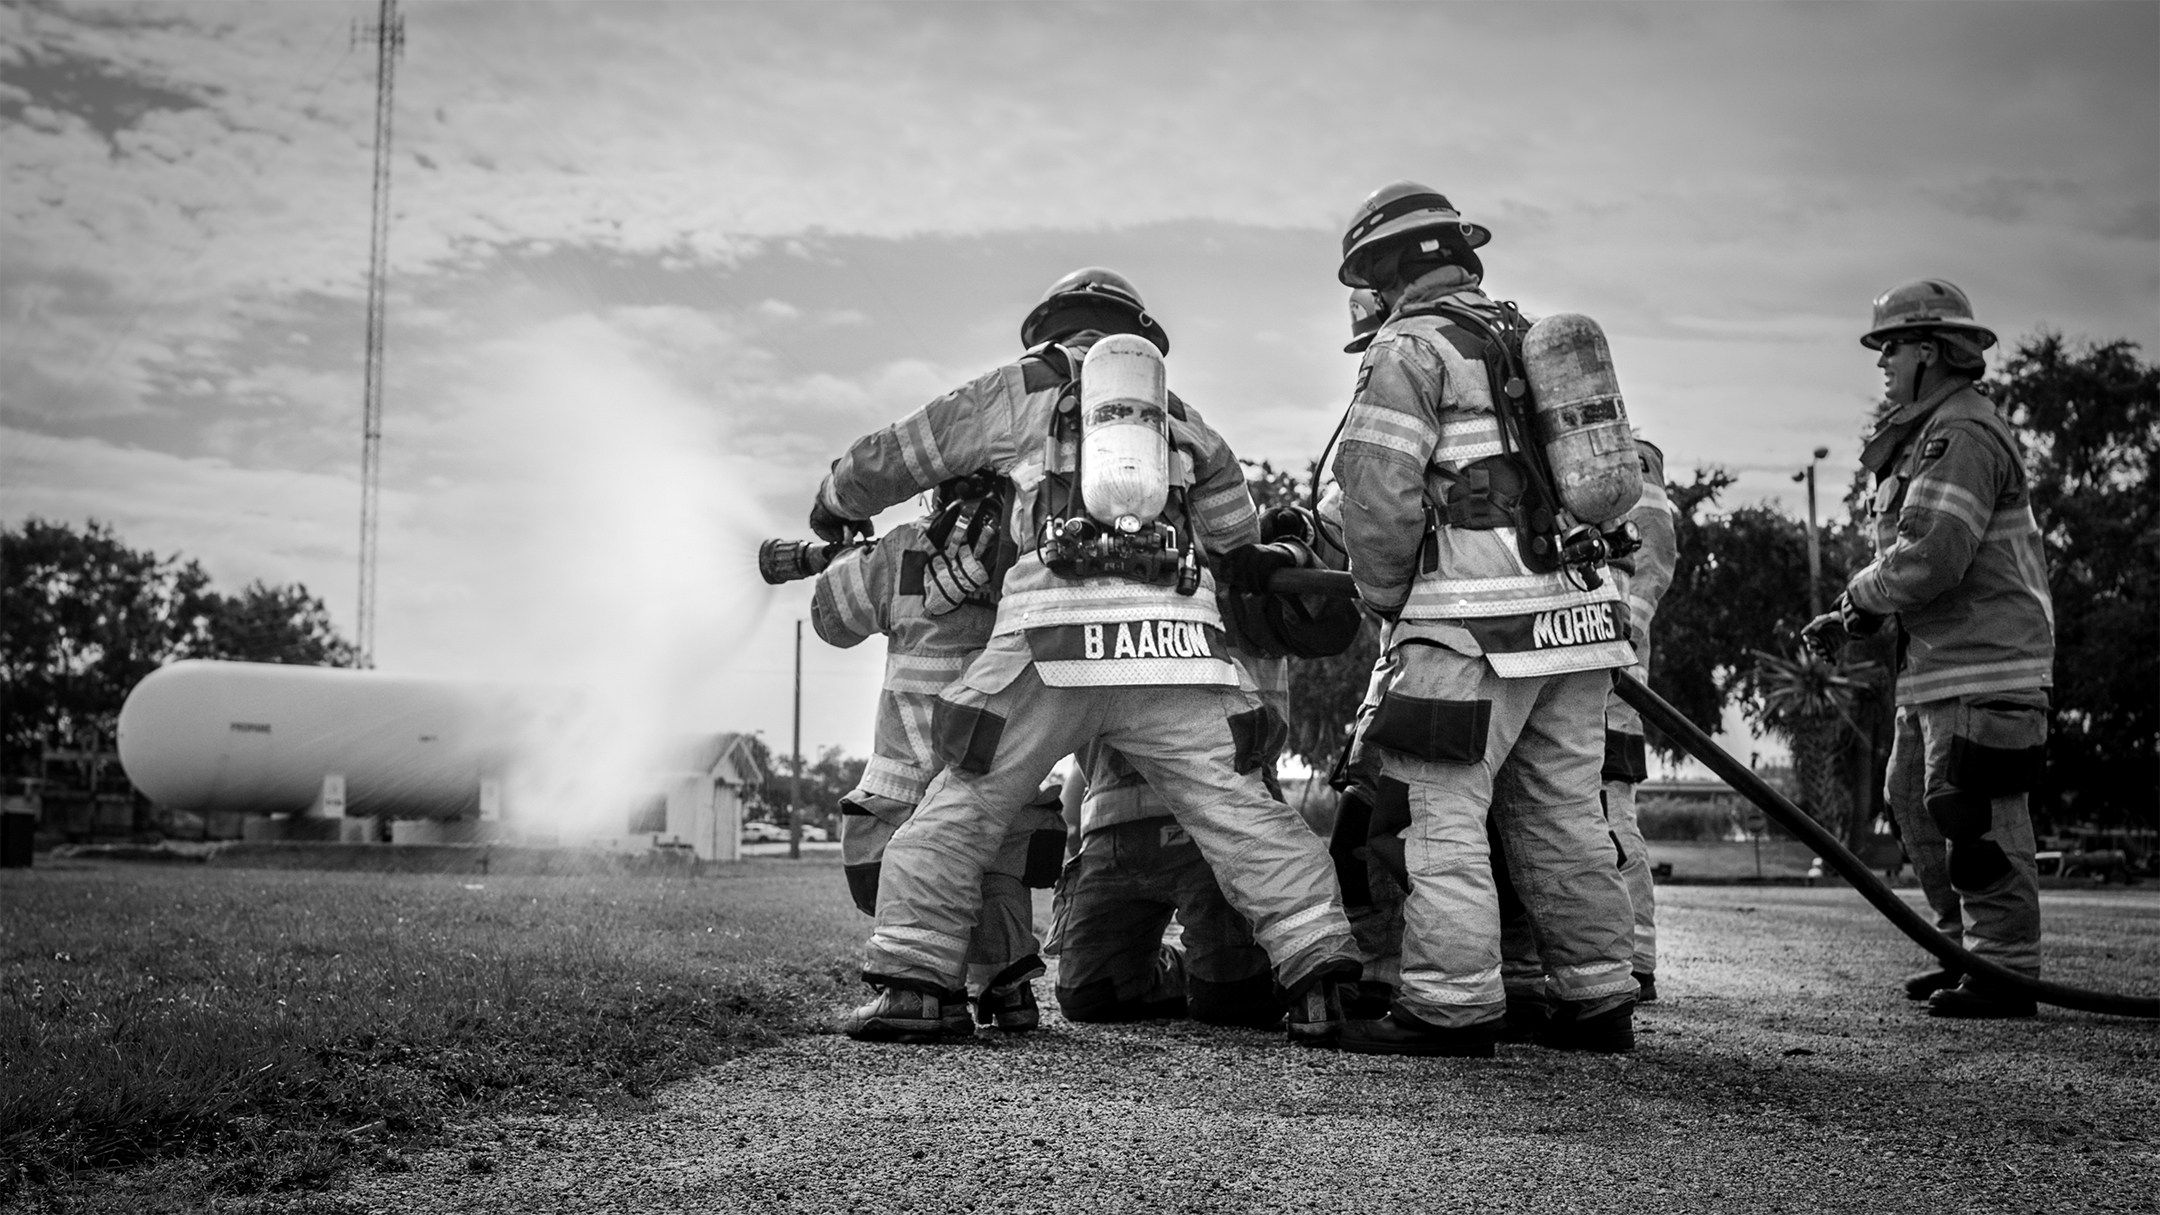 Make-A-Wish Firefighters Using Hose